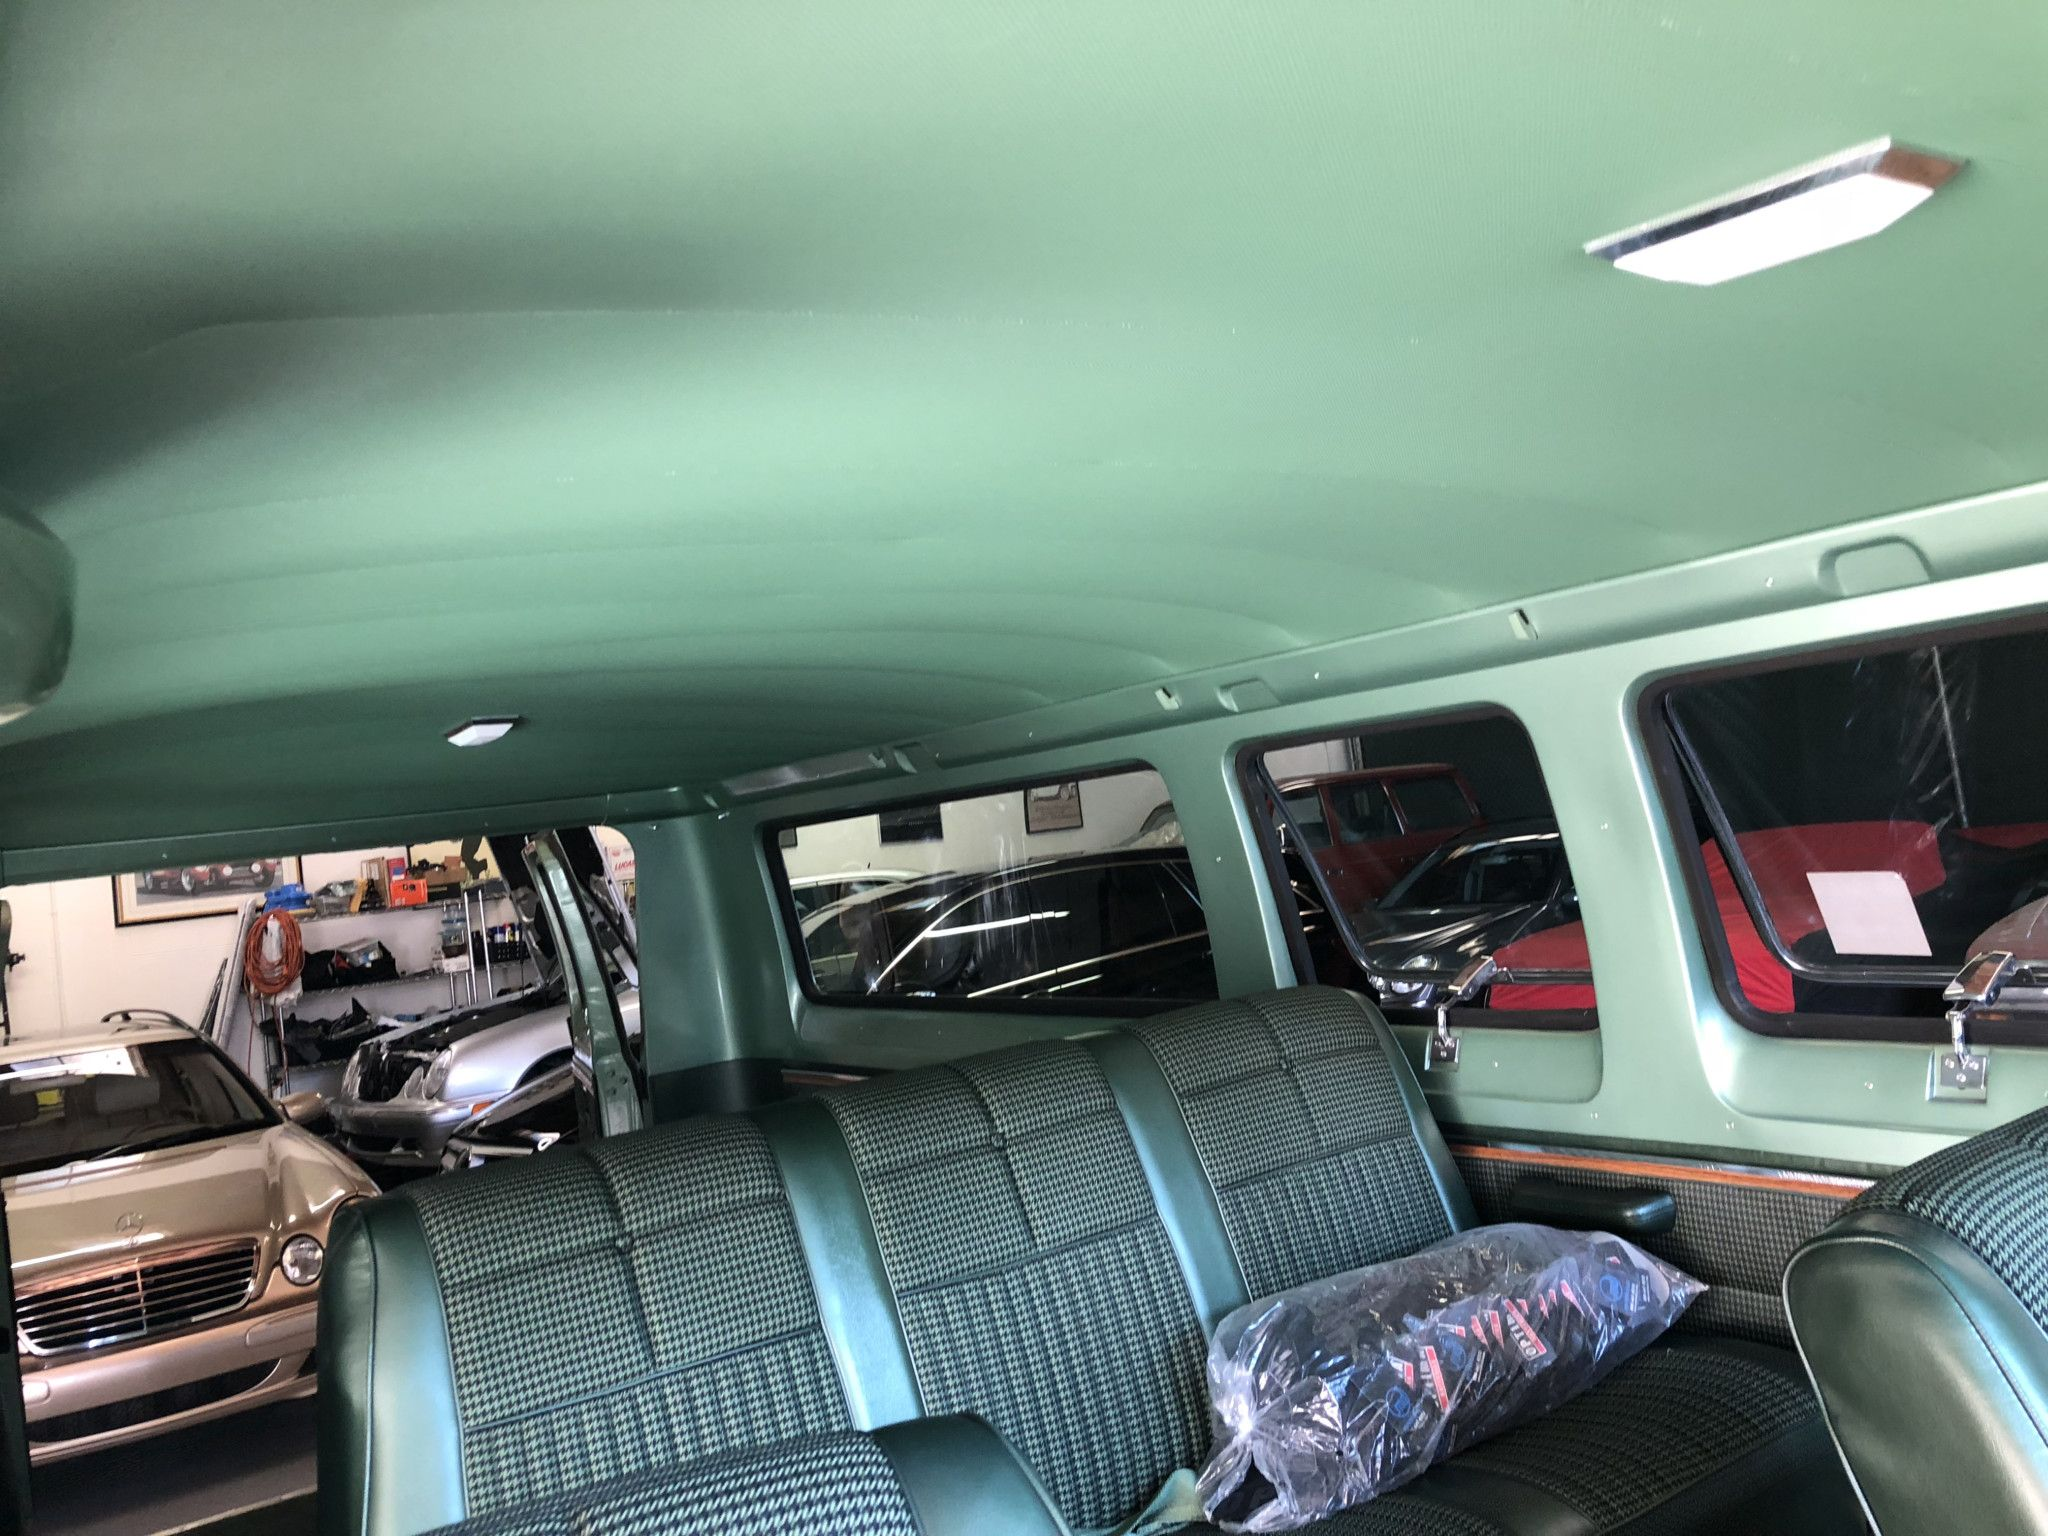 1972 Ford Econoline Club Wagon Chateau | 1972 FORD ECONOLINE